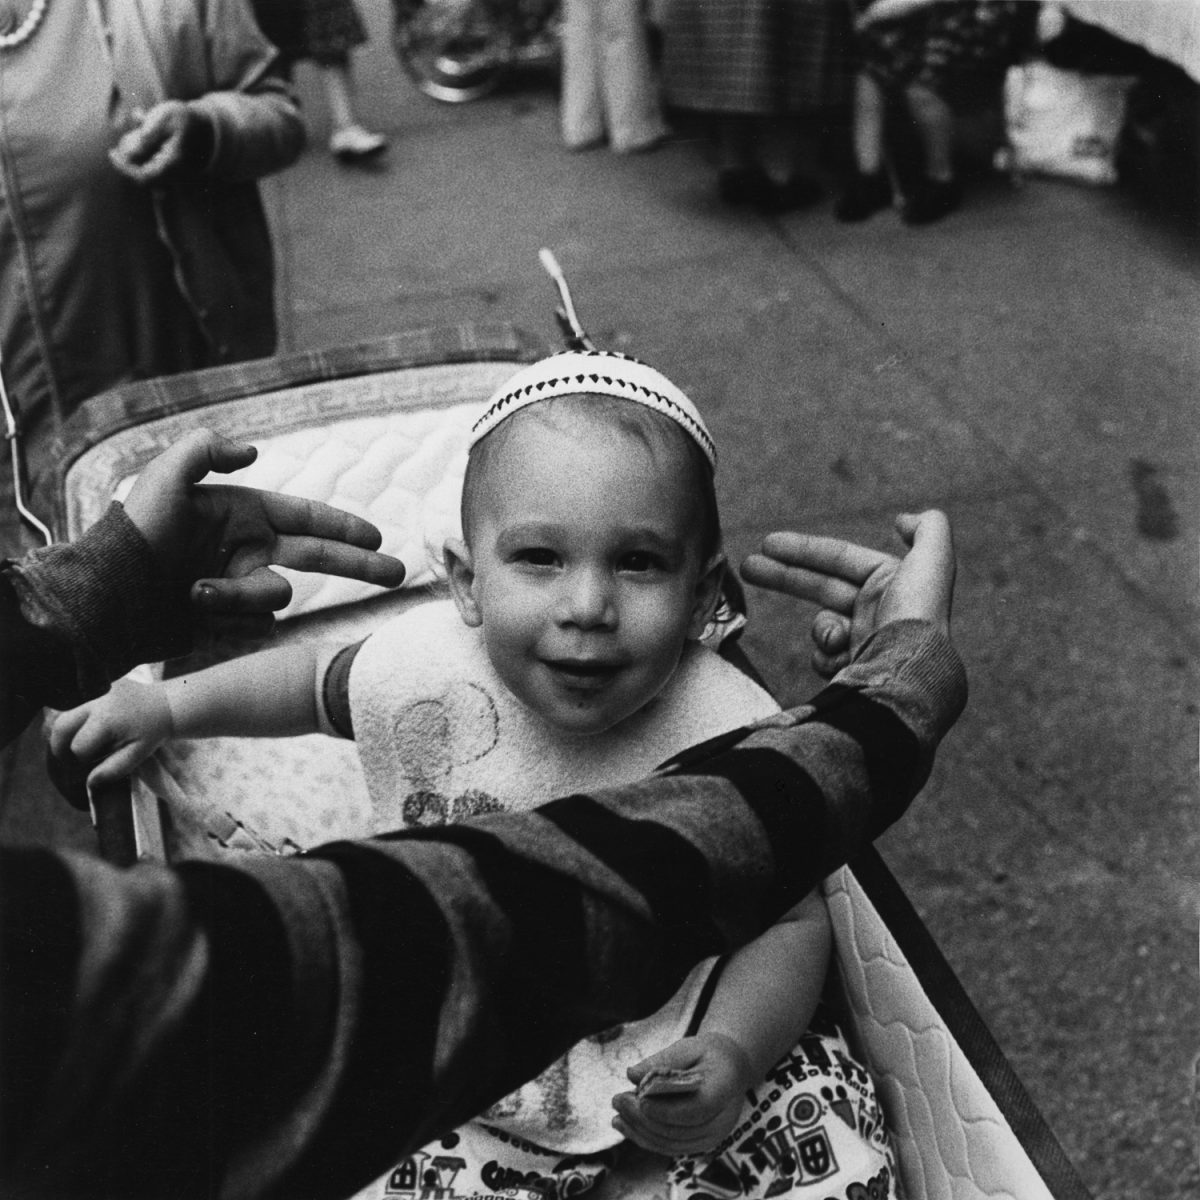 A future Talmudic student being pointed out by my photography student Michael Marsh at The Lower East Side Street Festival - NY, NY June 1978